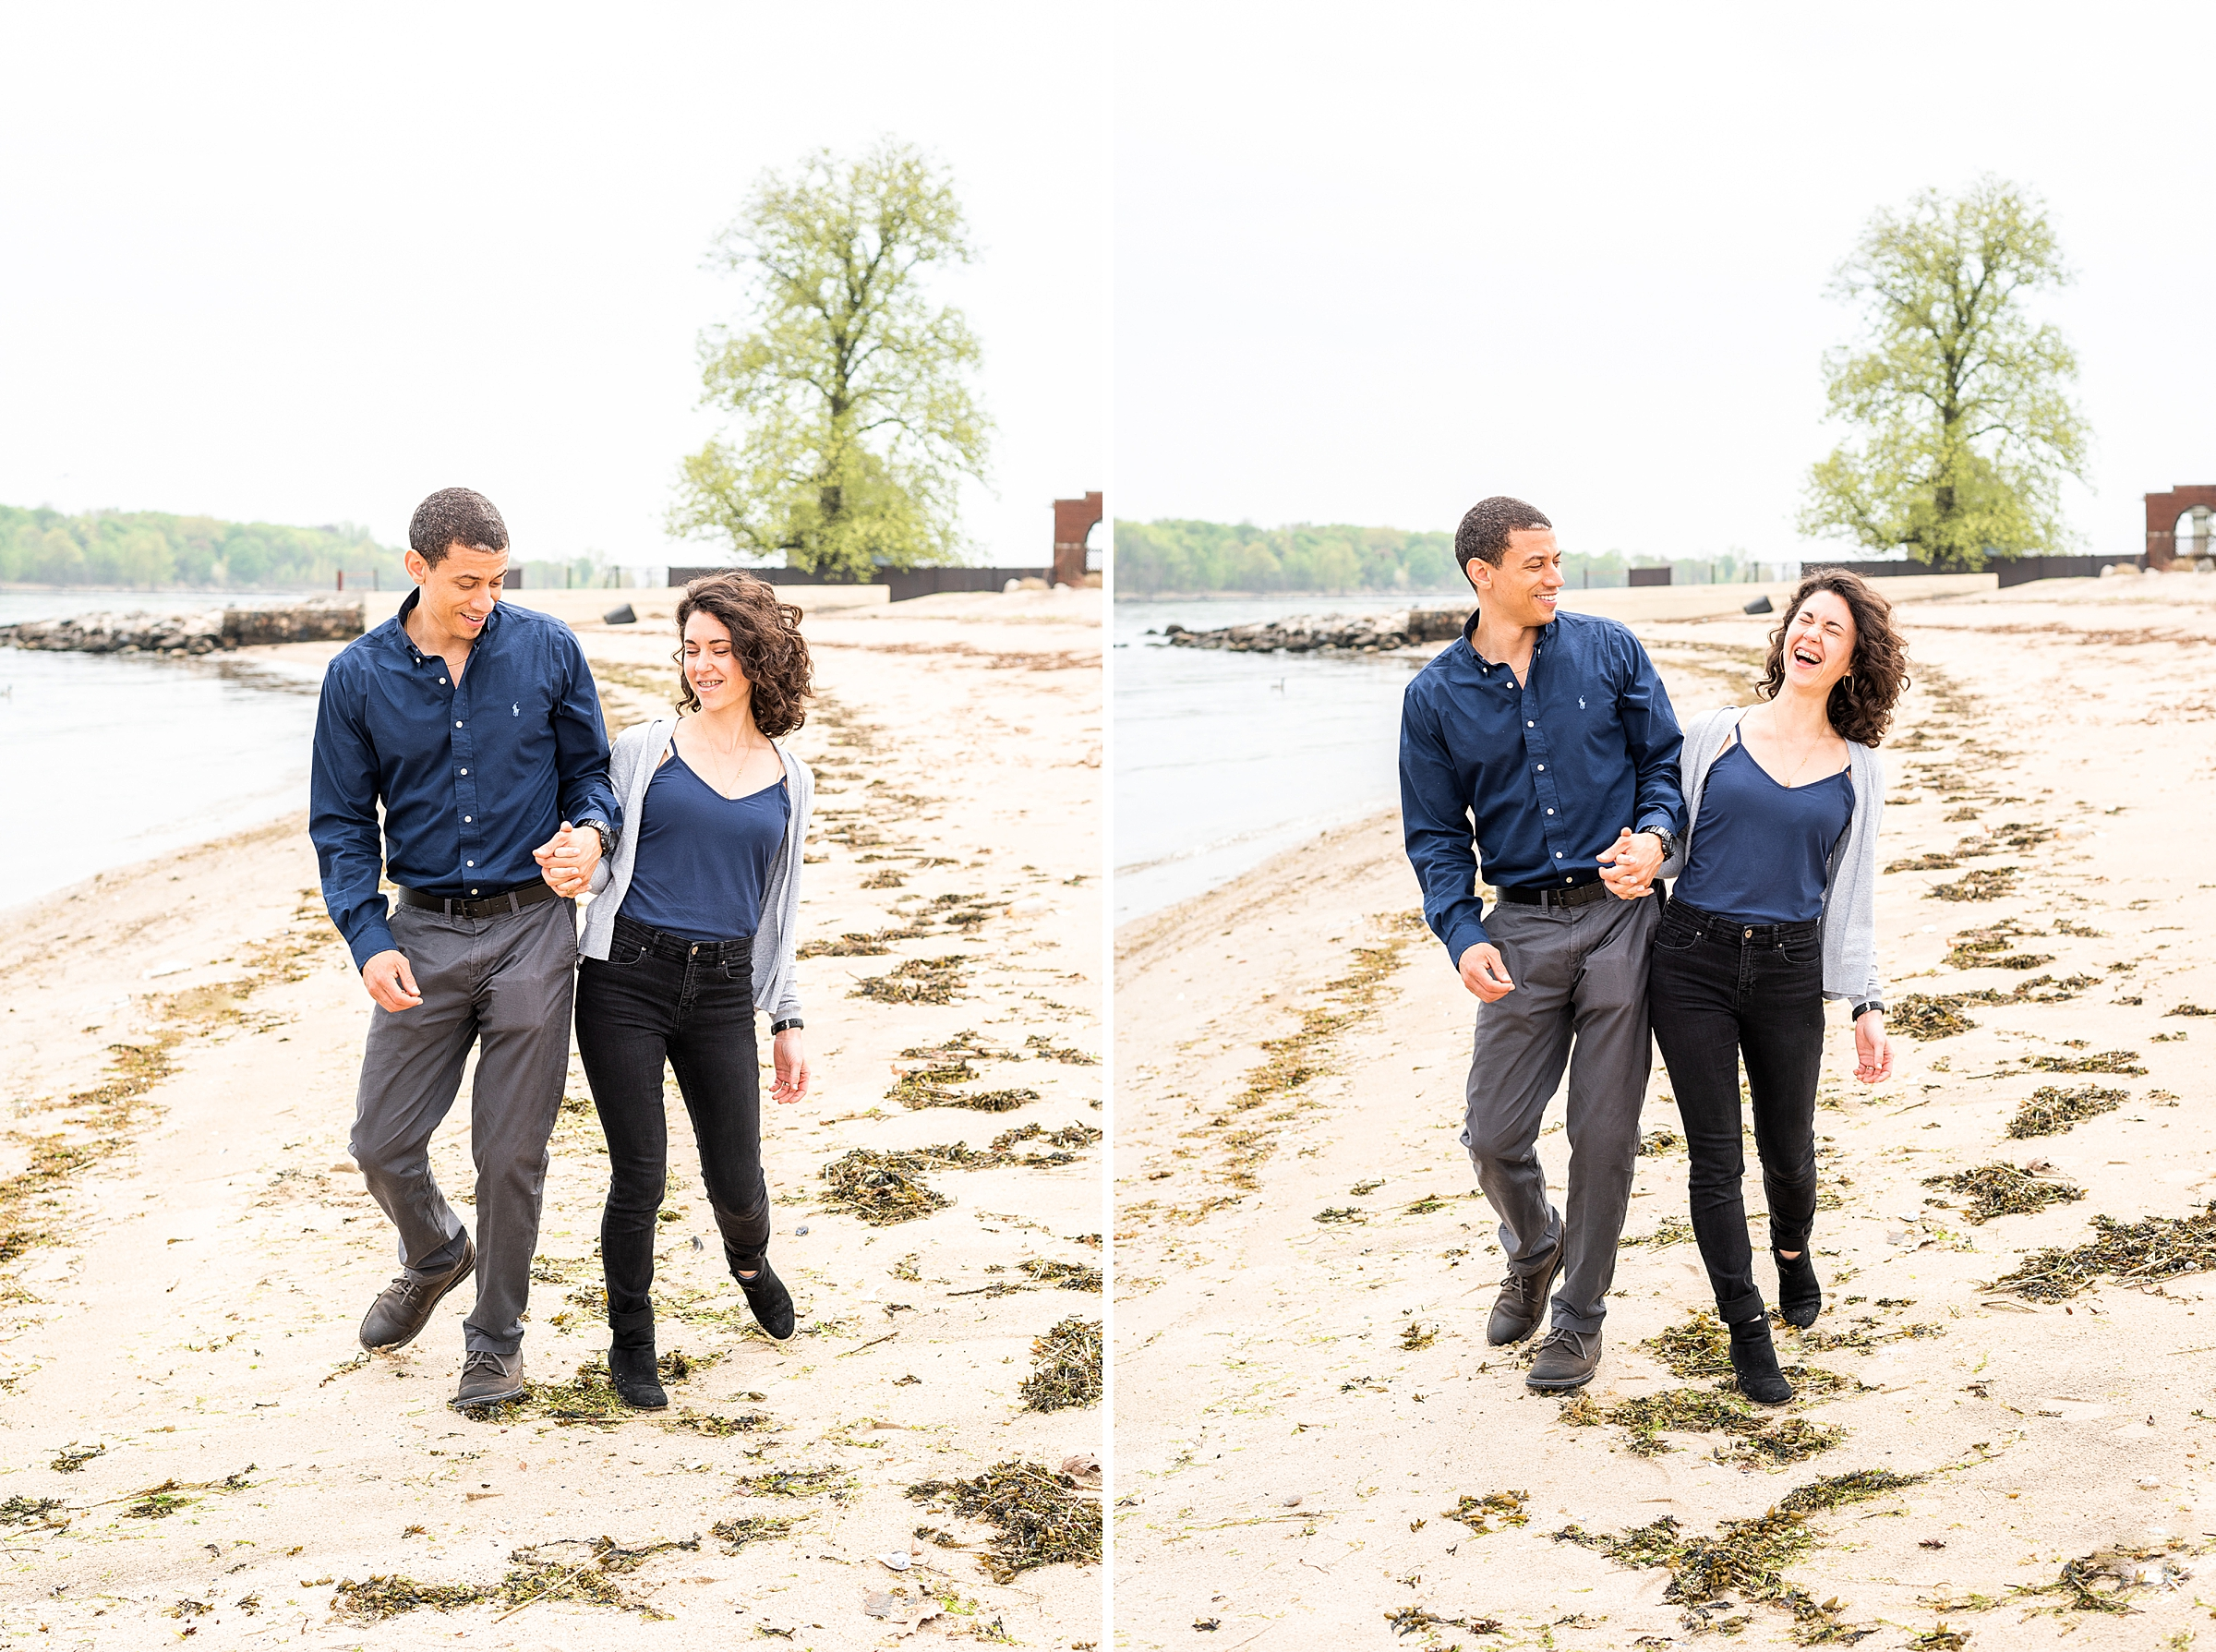 Husband and wife having fund together and laughing on the beach in New Rochelle, NY